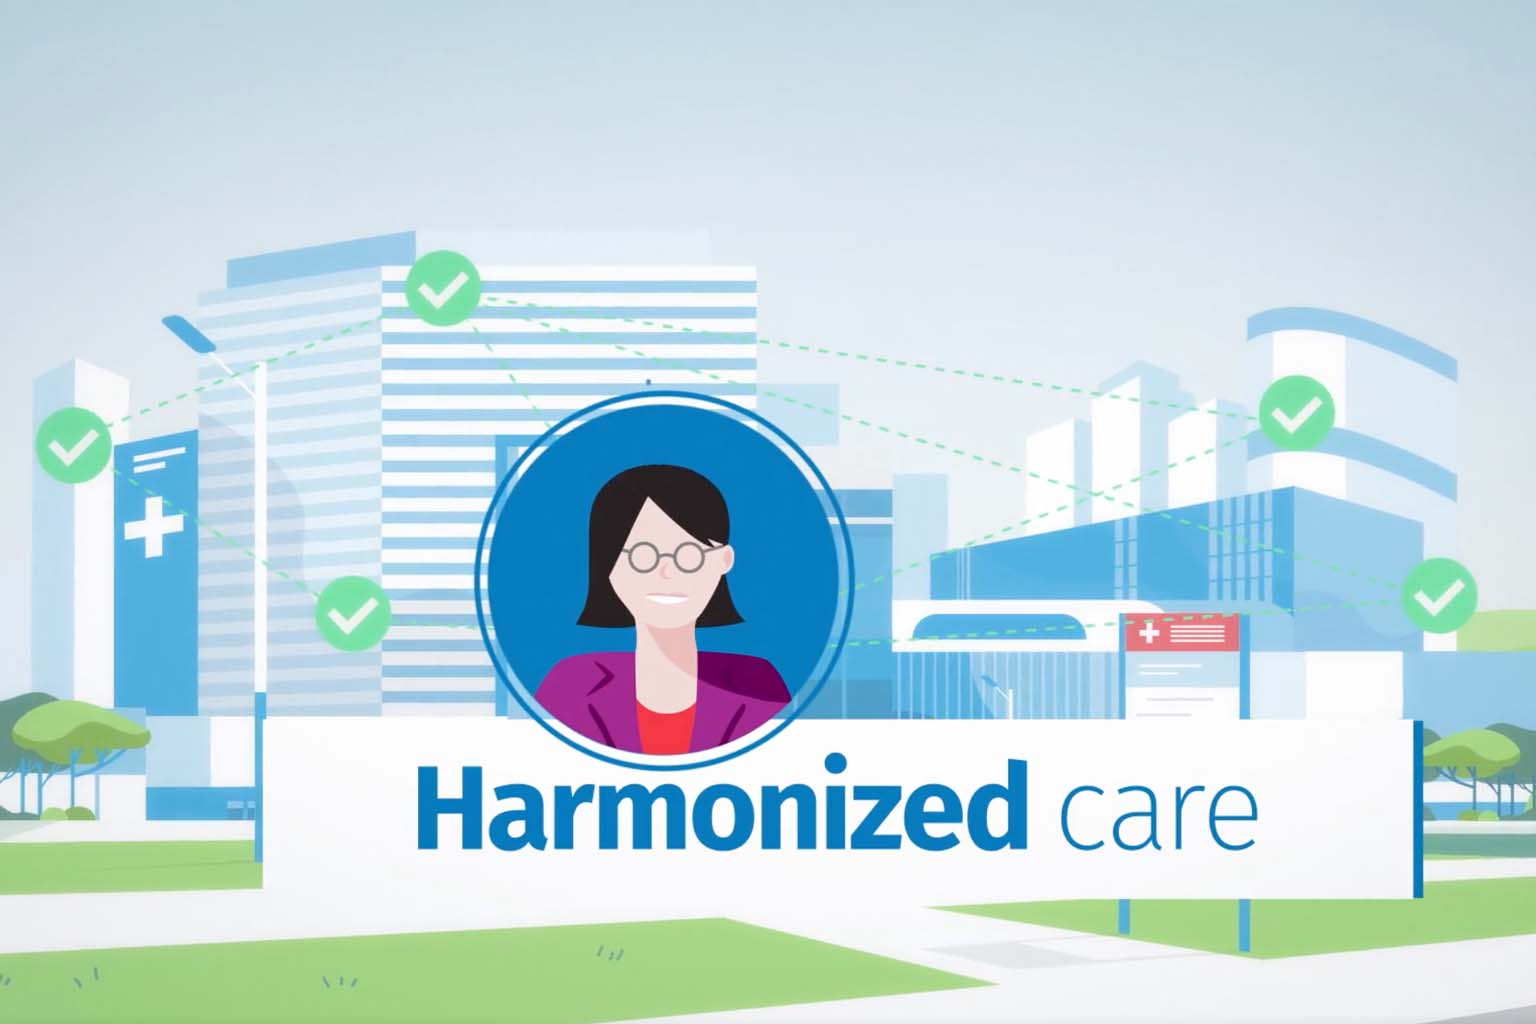 Step up to harmonized care